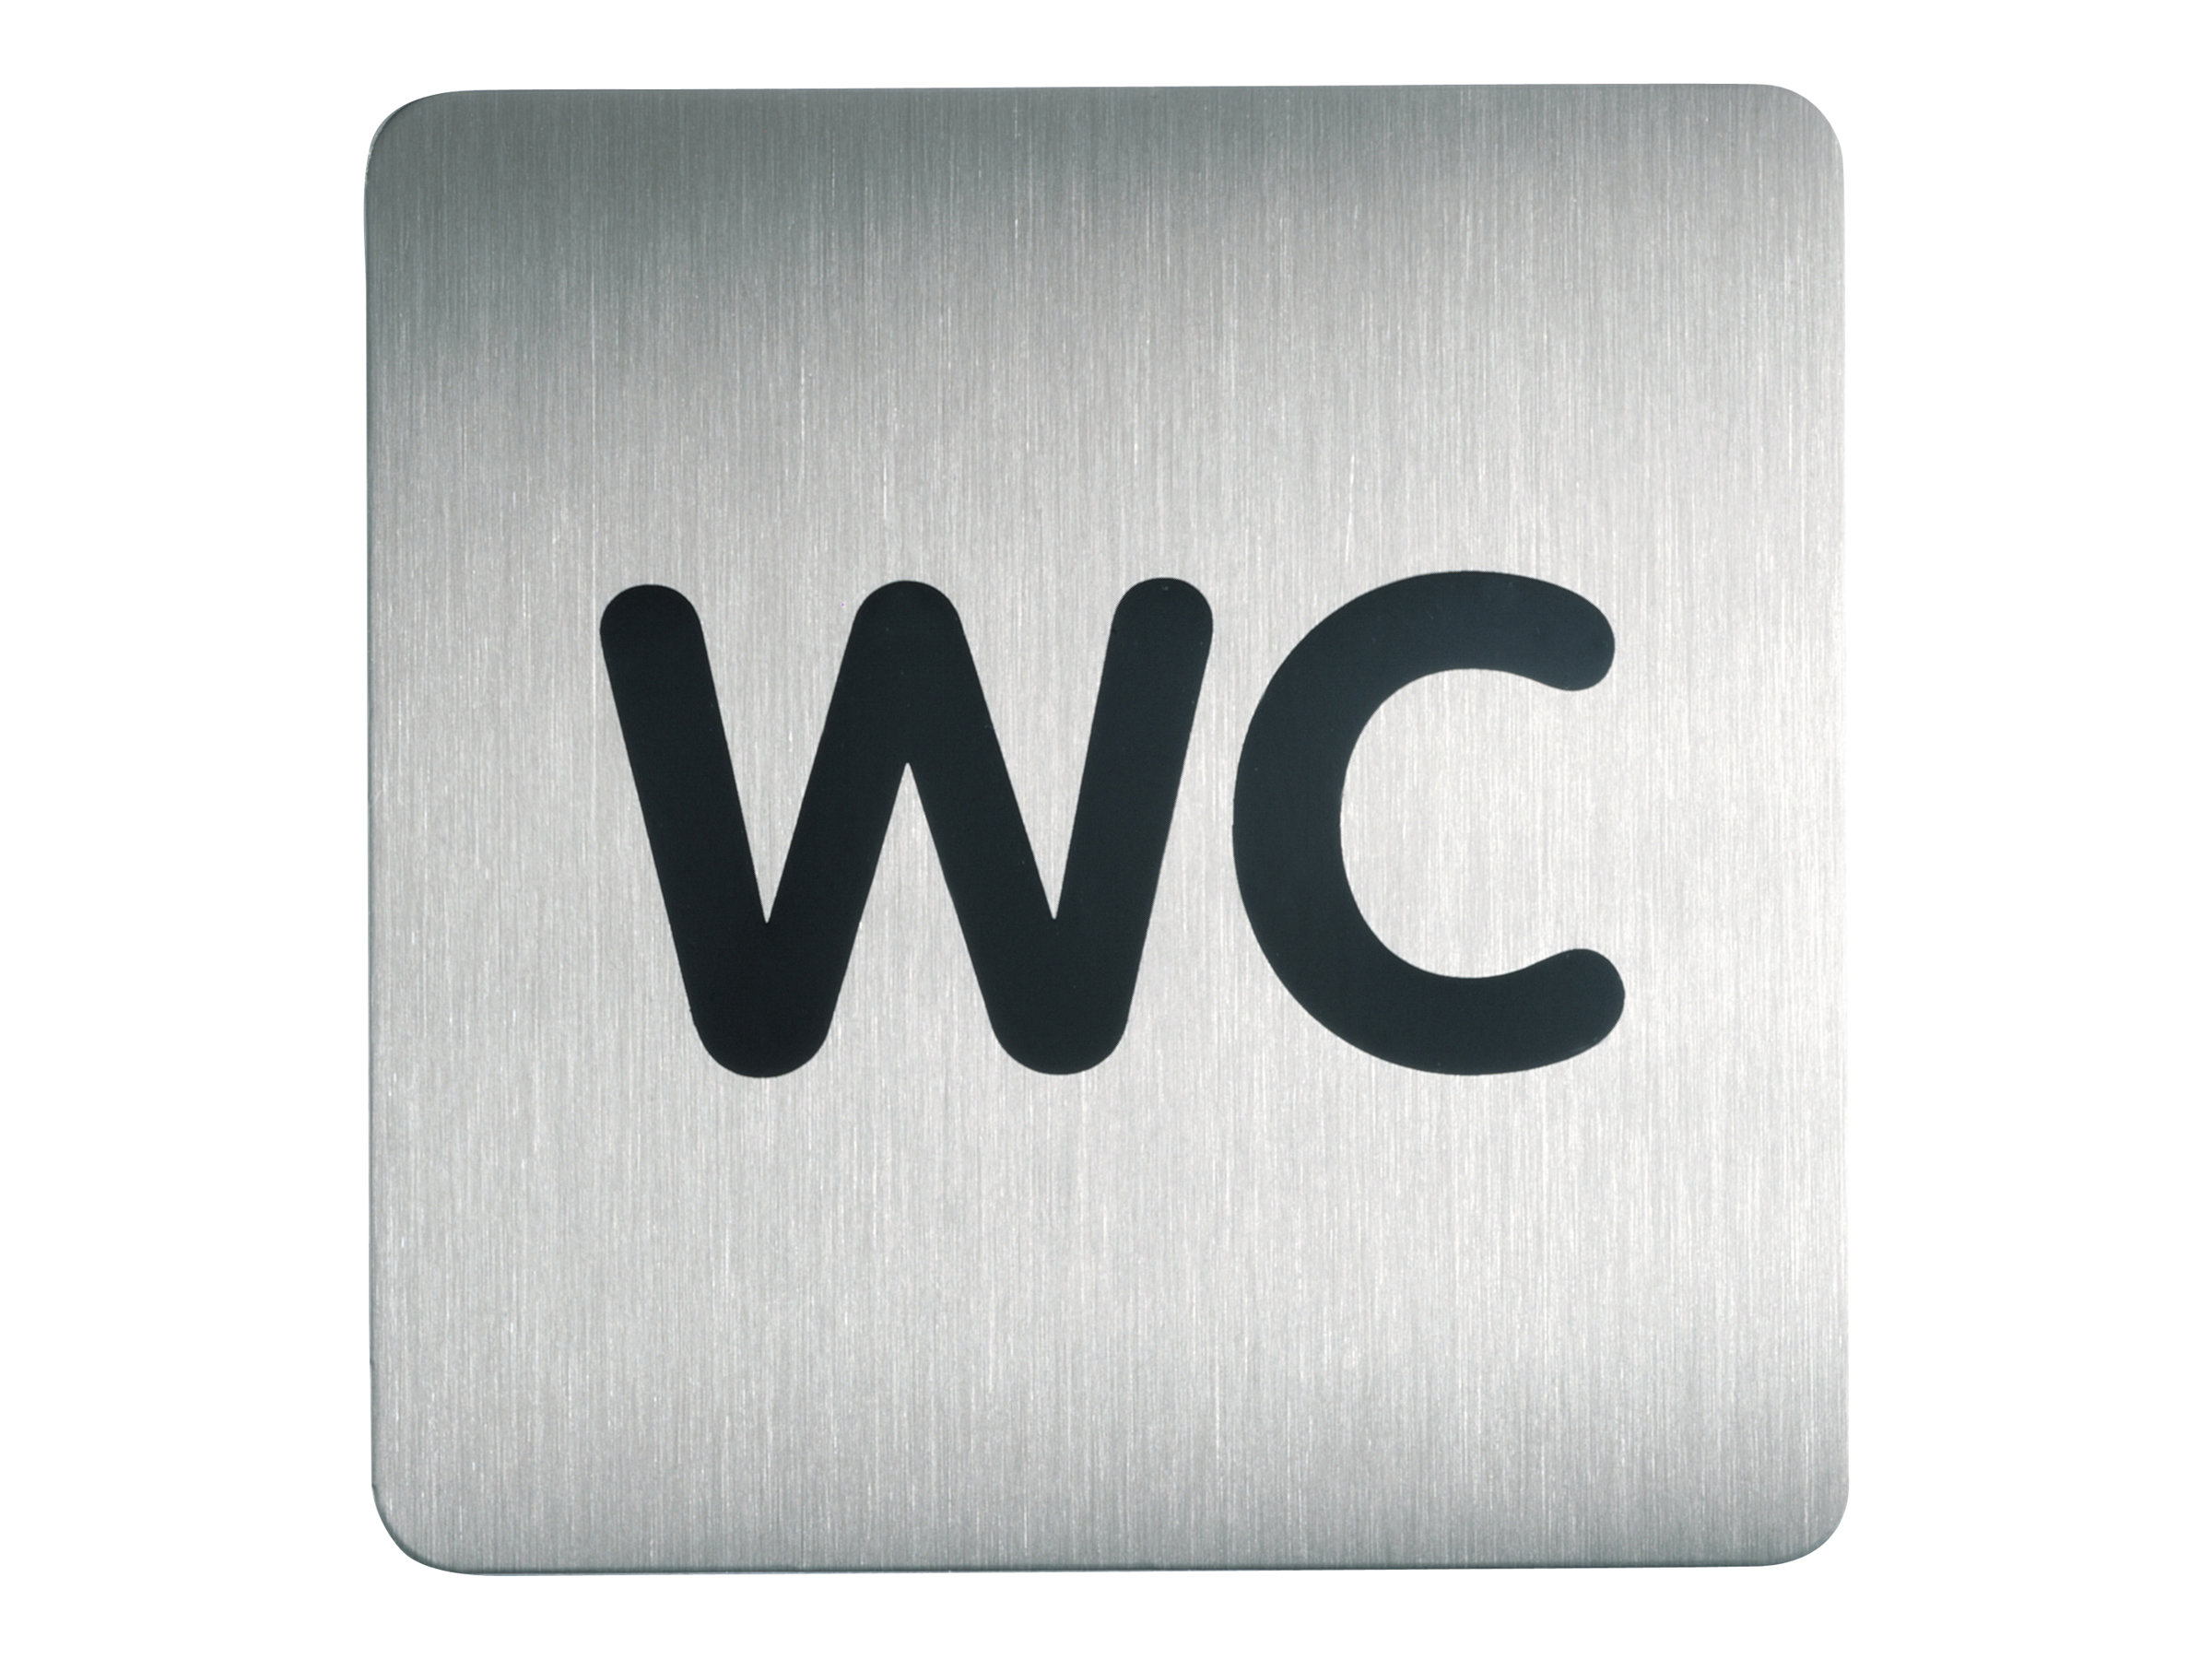 DURABLE PICTO - Pictogramme - WC - 150 x 150 mm